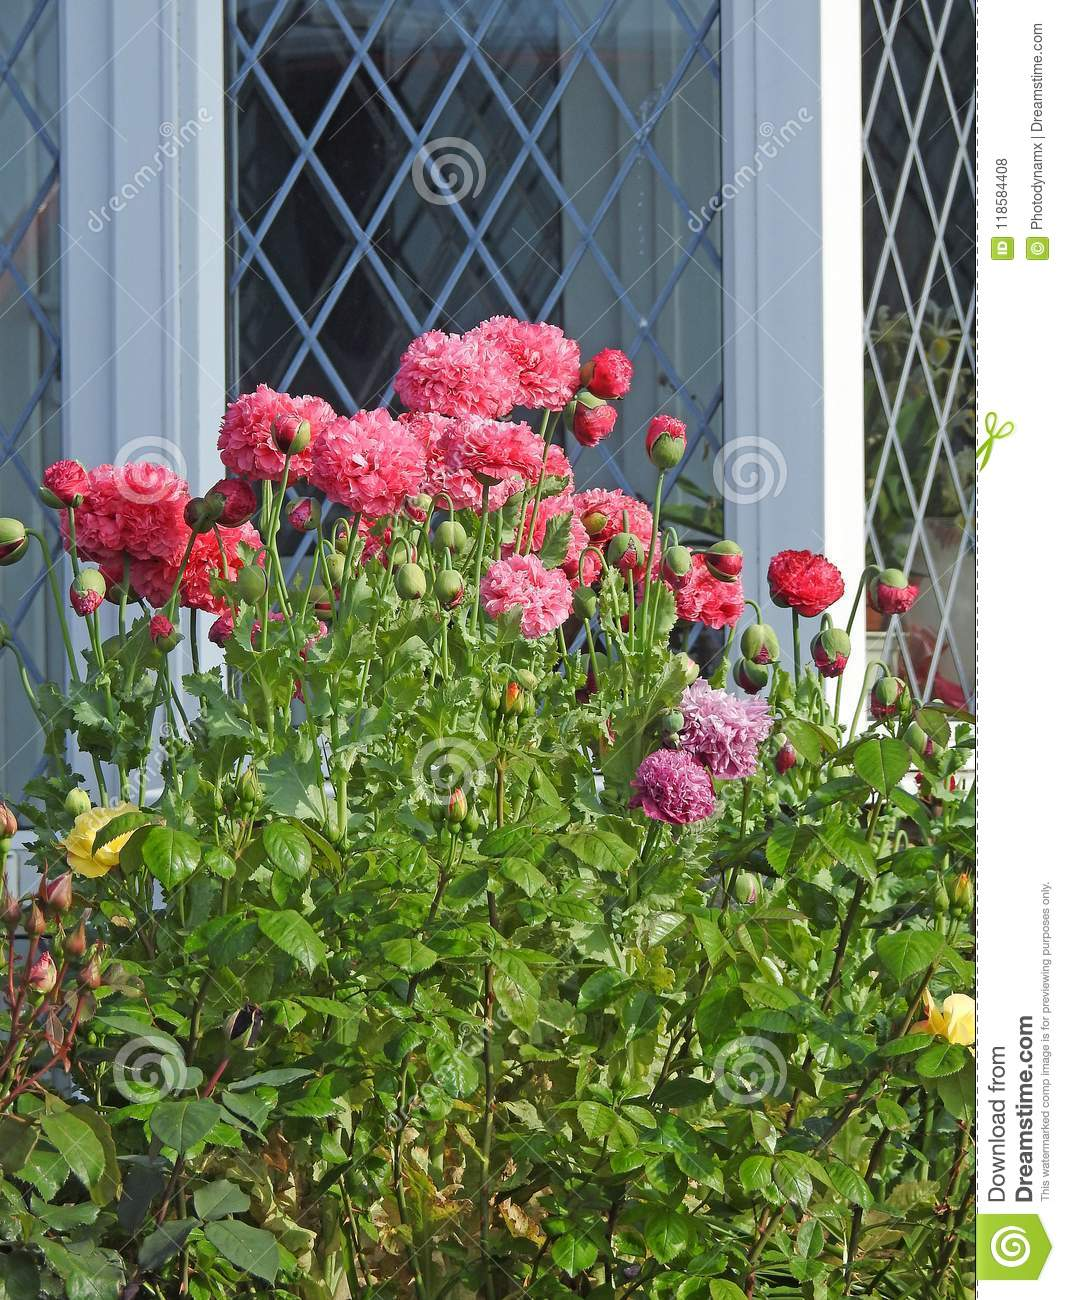 Cottage Garden Roses Poppies With Leaded Lattice Windows Stock